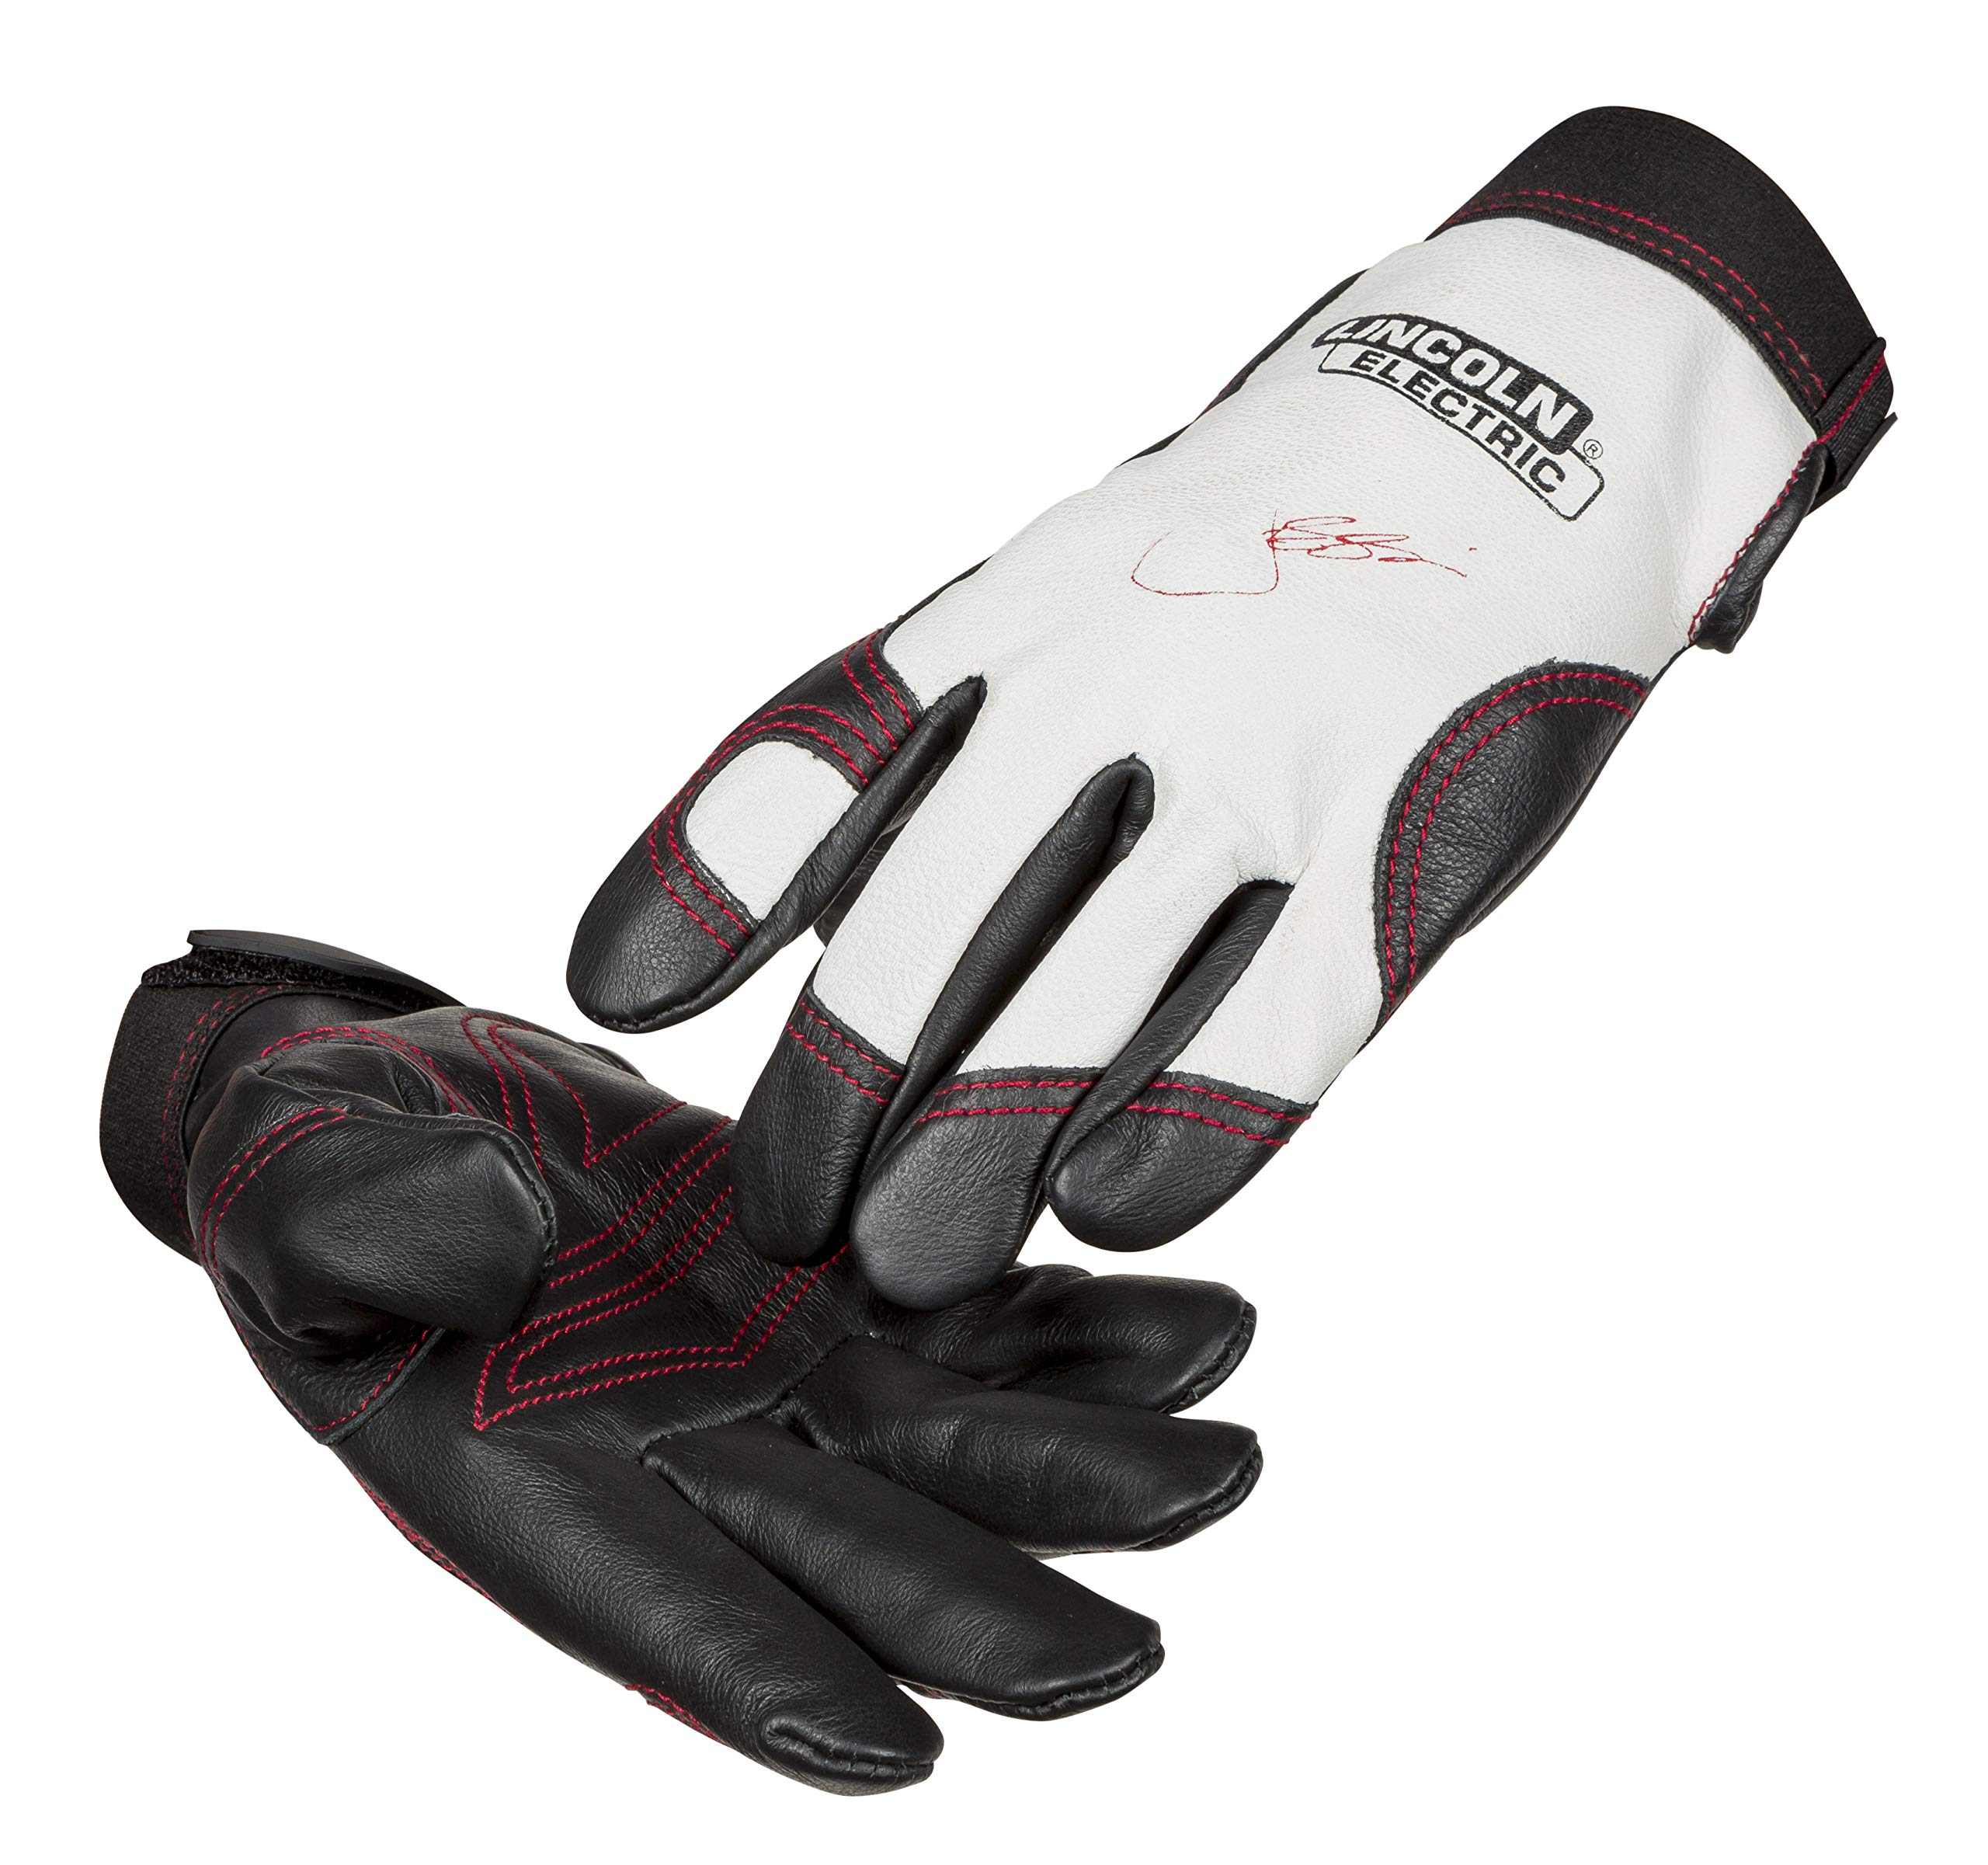 Lincoln Electric Women's Full Grain Leather Work Gloves | Padded Palm | Women's Small | K3231-S by Lincoln Electric